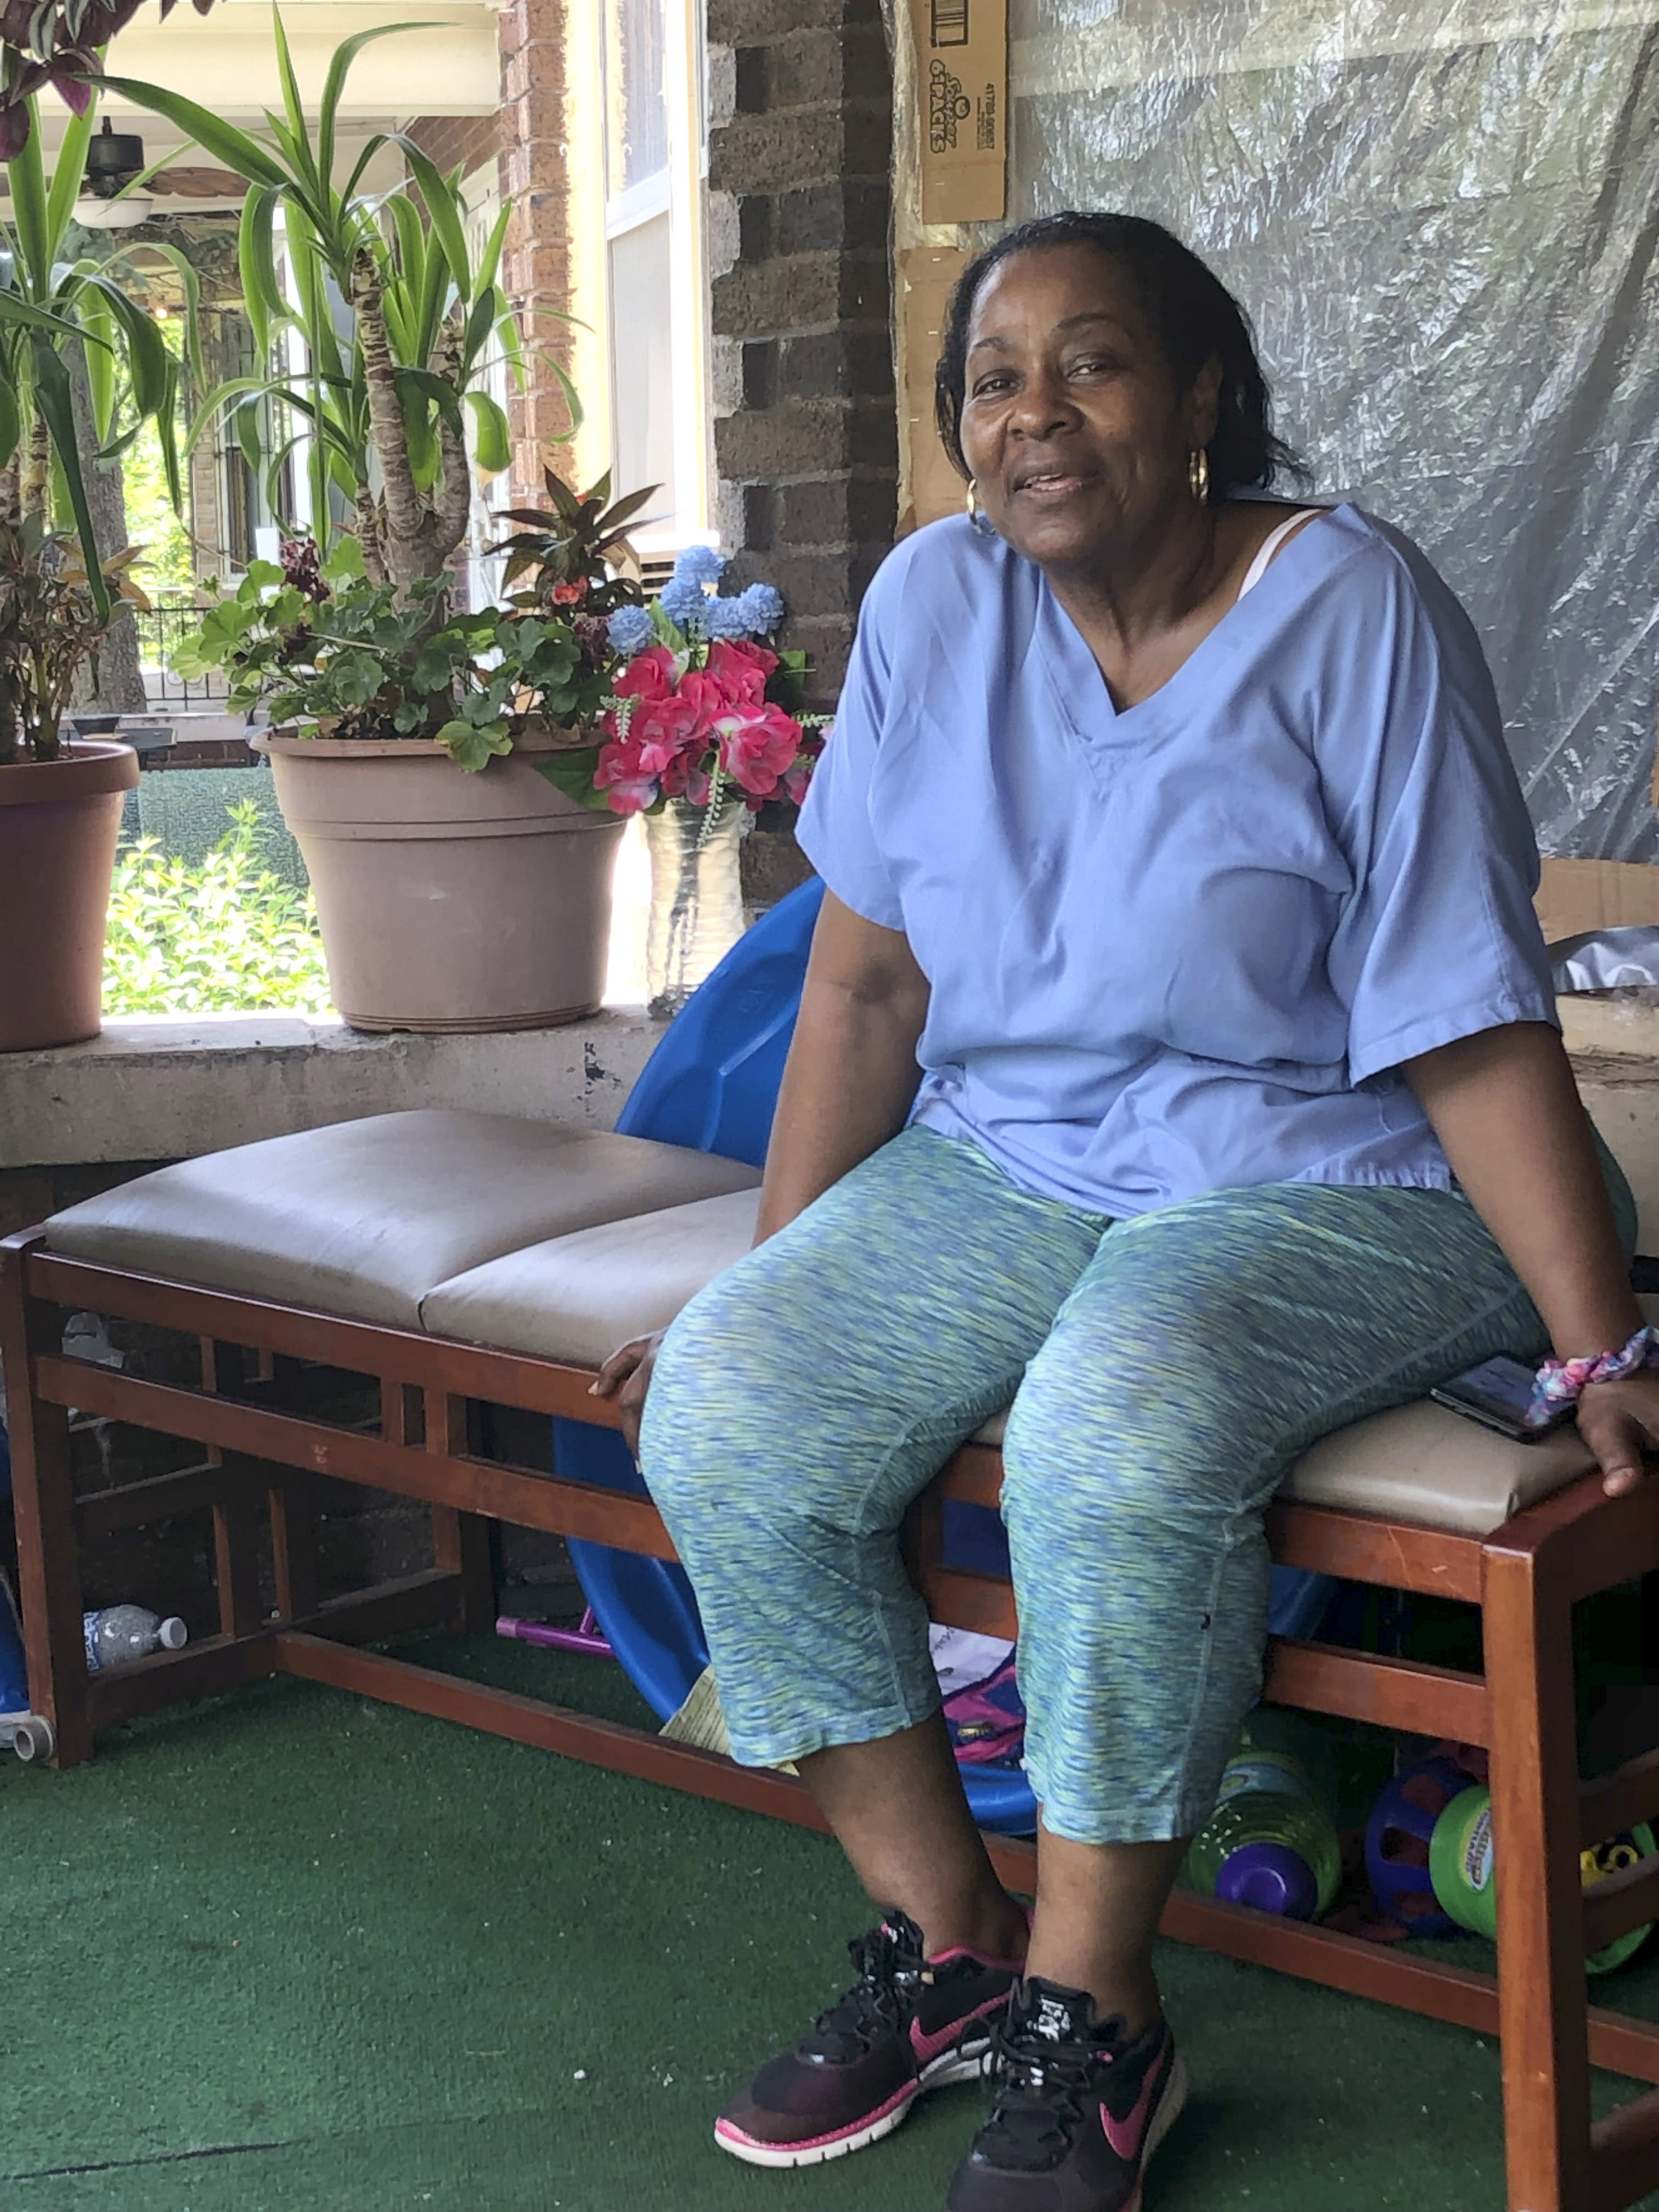 "Deloris Knight of Detroit, Mich., sits on her front porch, Wednesday, July 17, 2019, as she prepares for the heat wave that will descend upon Detroit and a wide section of the Midwest. Knight said she will keep the heat out of her Eastside Detroit home by keeping her doors and curtains closed while running the small window air conditioner in the living room. ""We have a couple of big fans. We have ceiling fans,"" Knight, 63, said while enjoying Wednesday's more comfortable 80-plus degree weather from her front porch. (AP Photo/Corey Williams)"